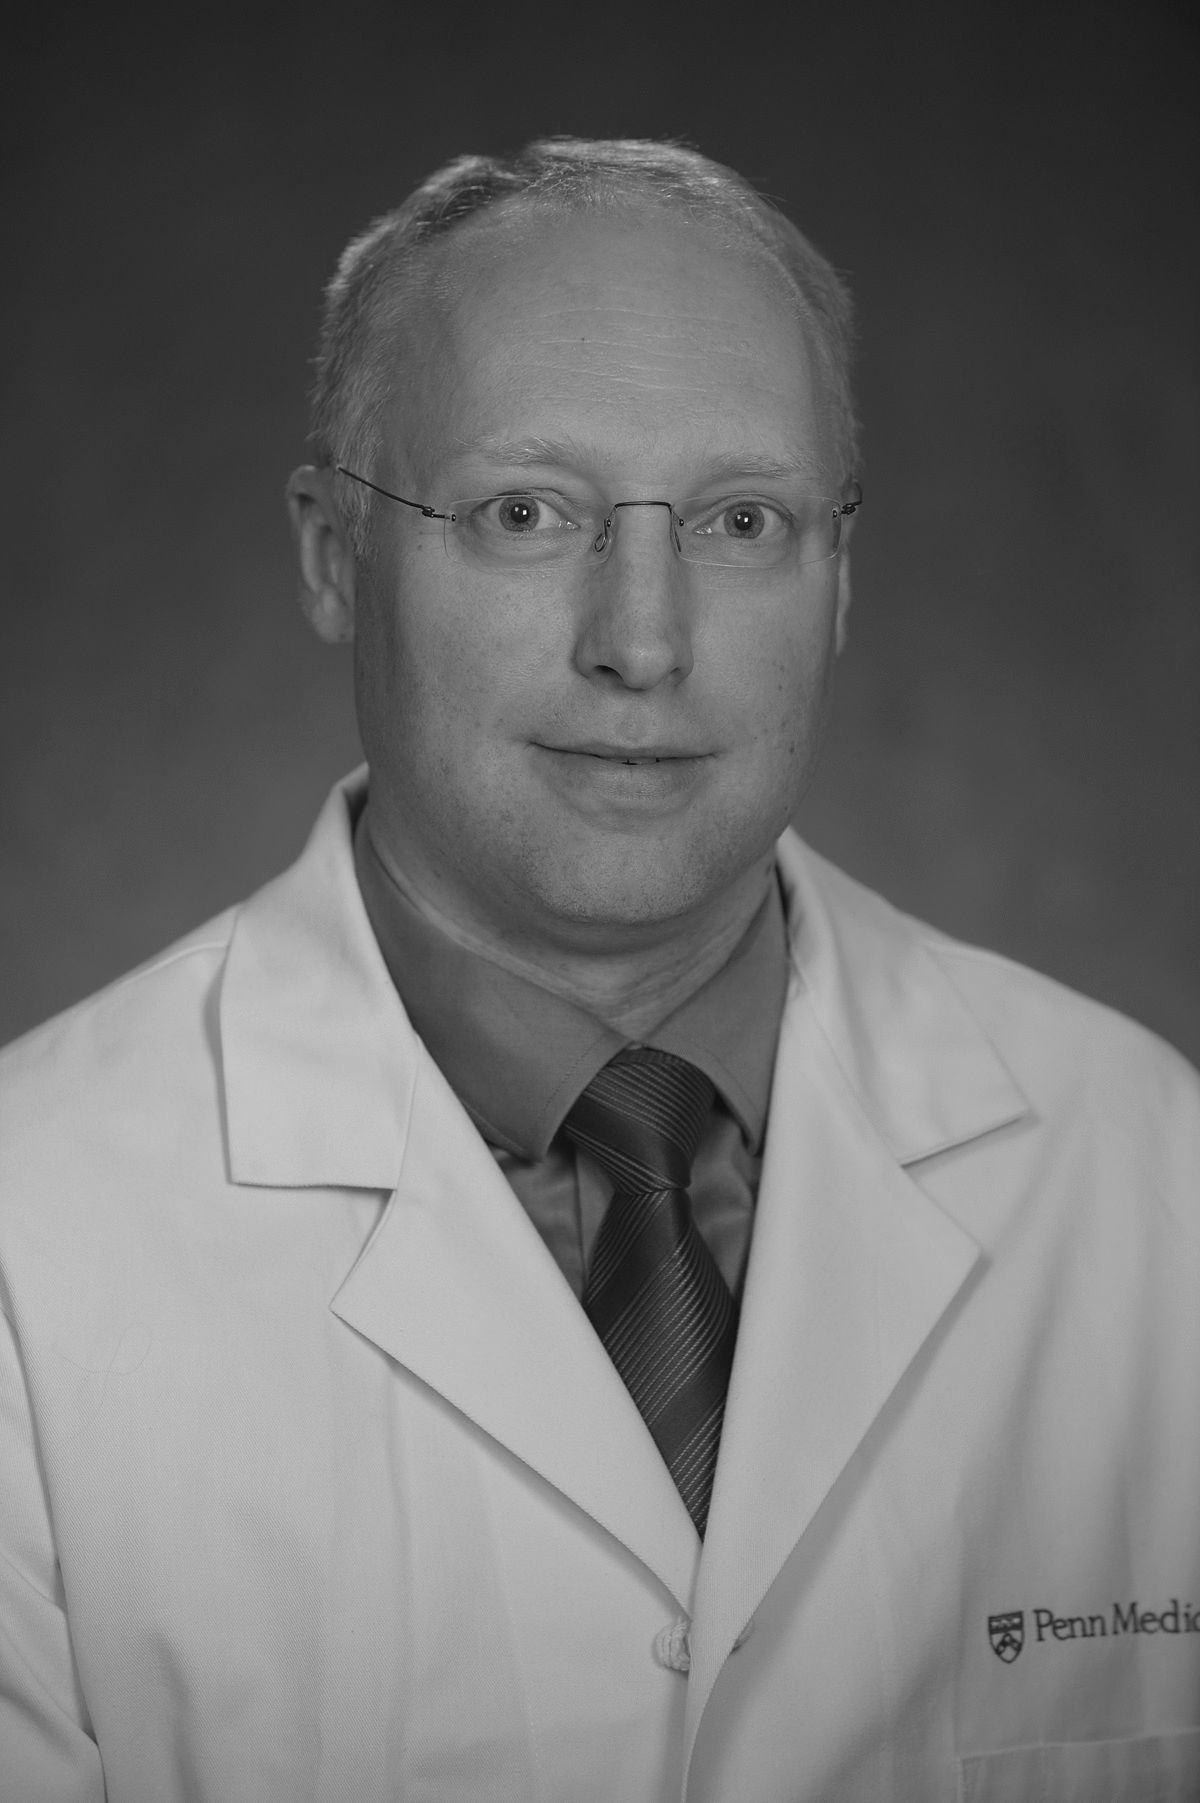 Mathias Basner, MD, PhD, MSc